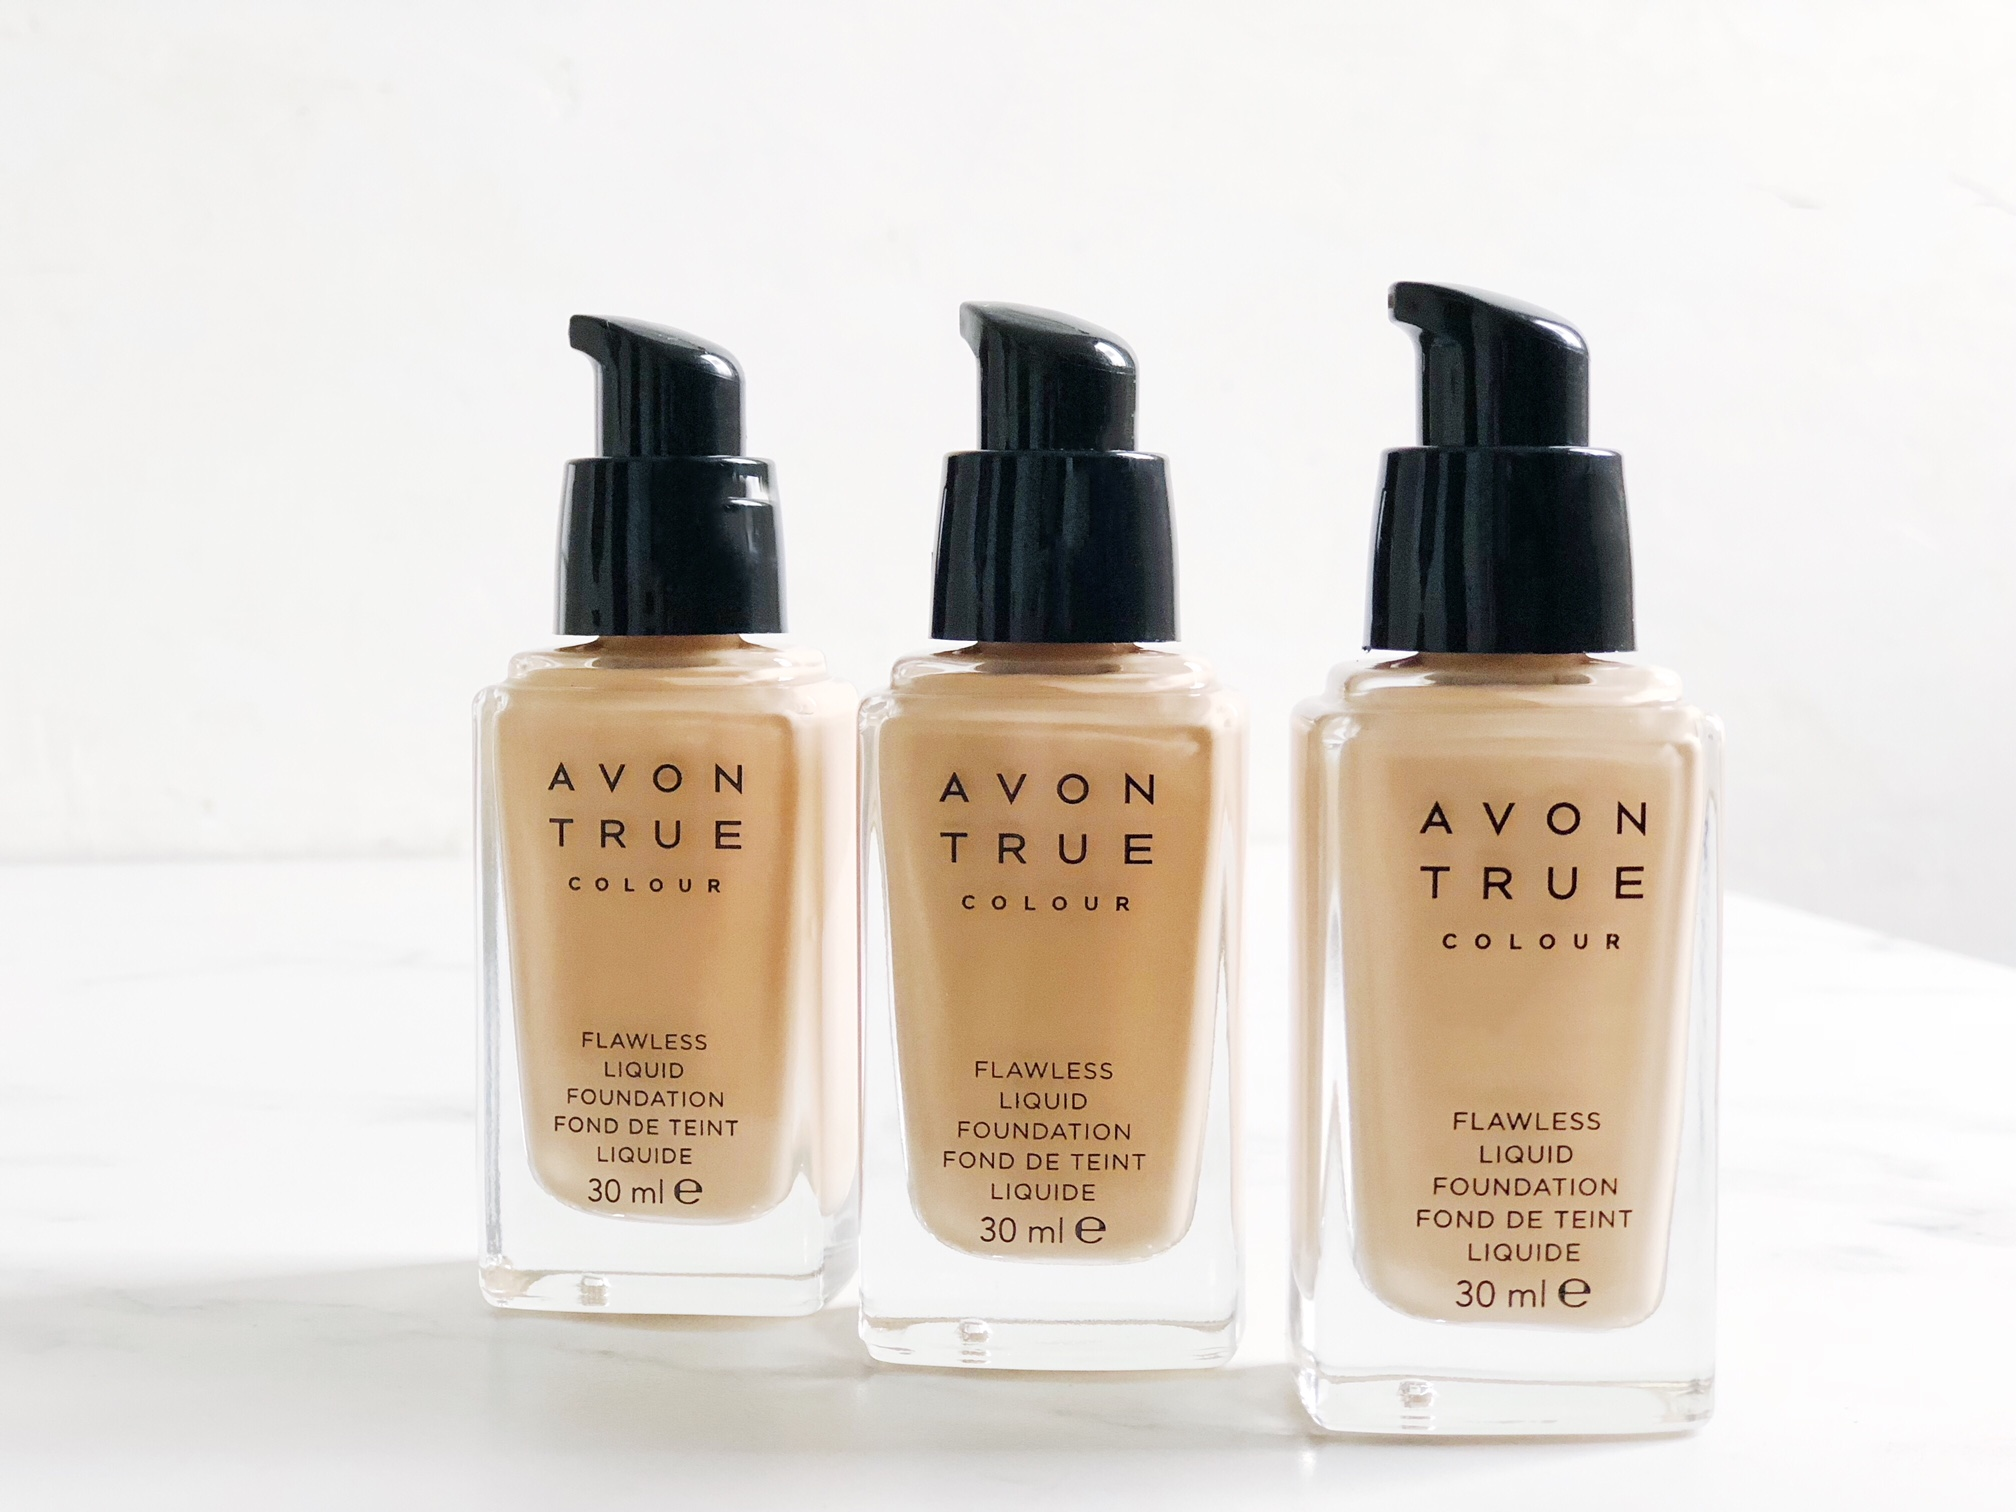 Perfect Coverage With Avon True Colour Flawless Liquid Foundation